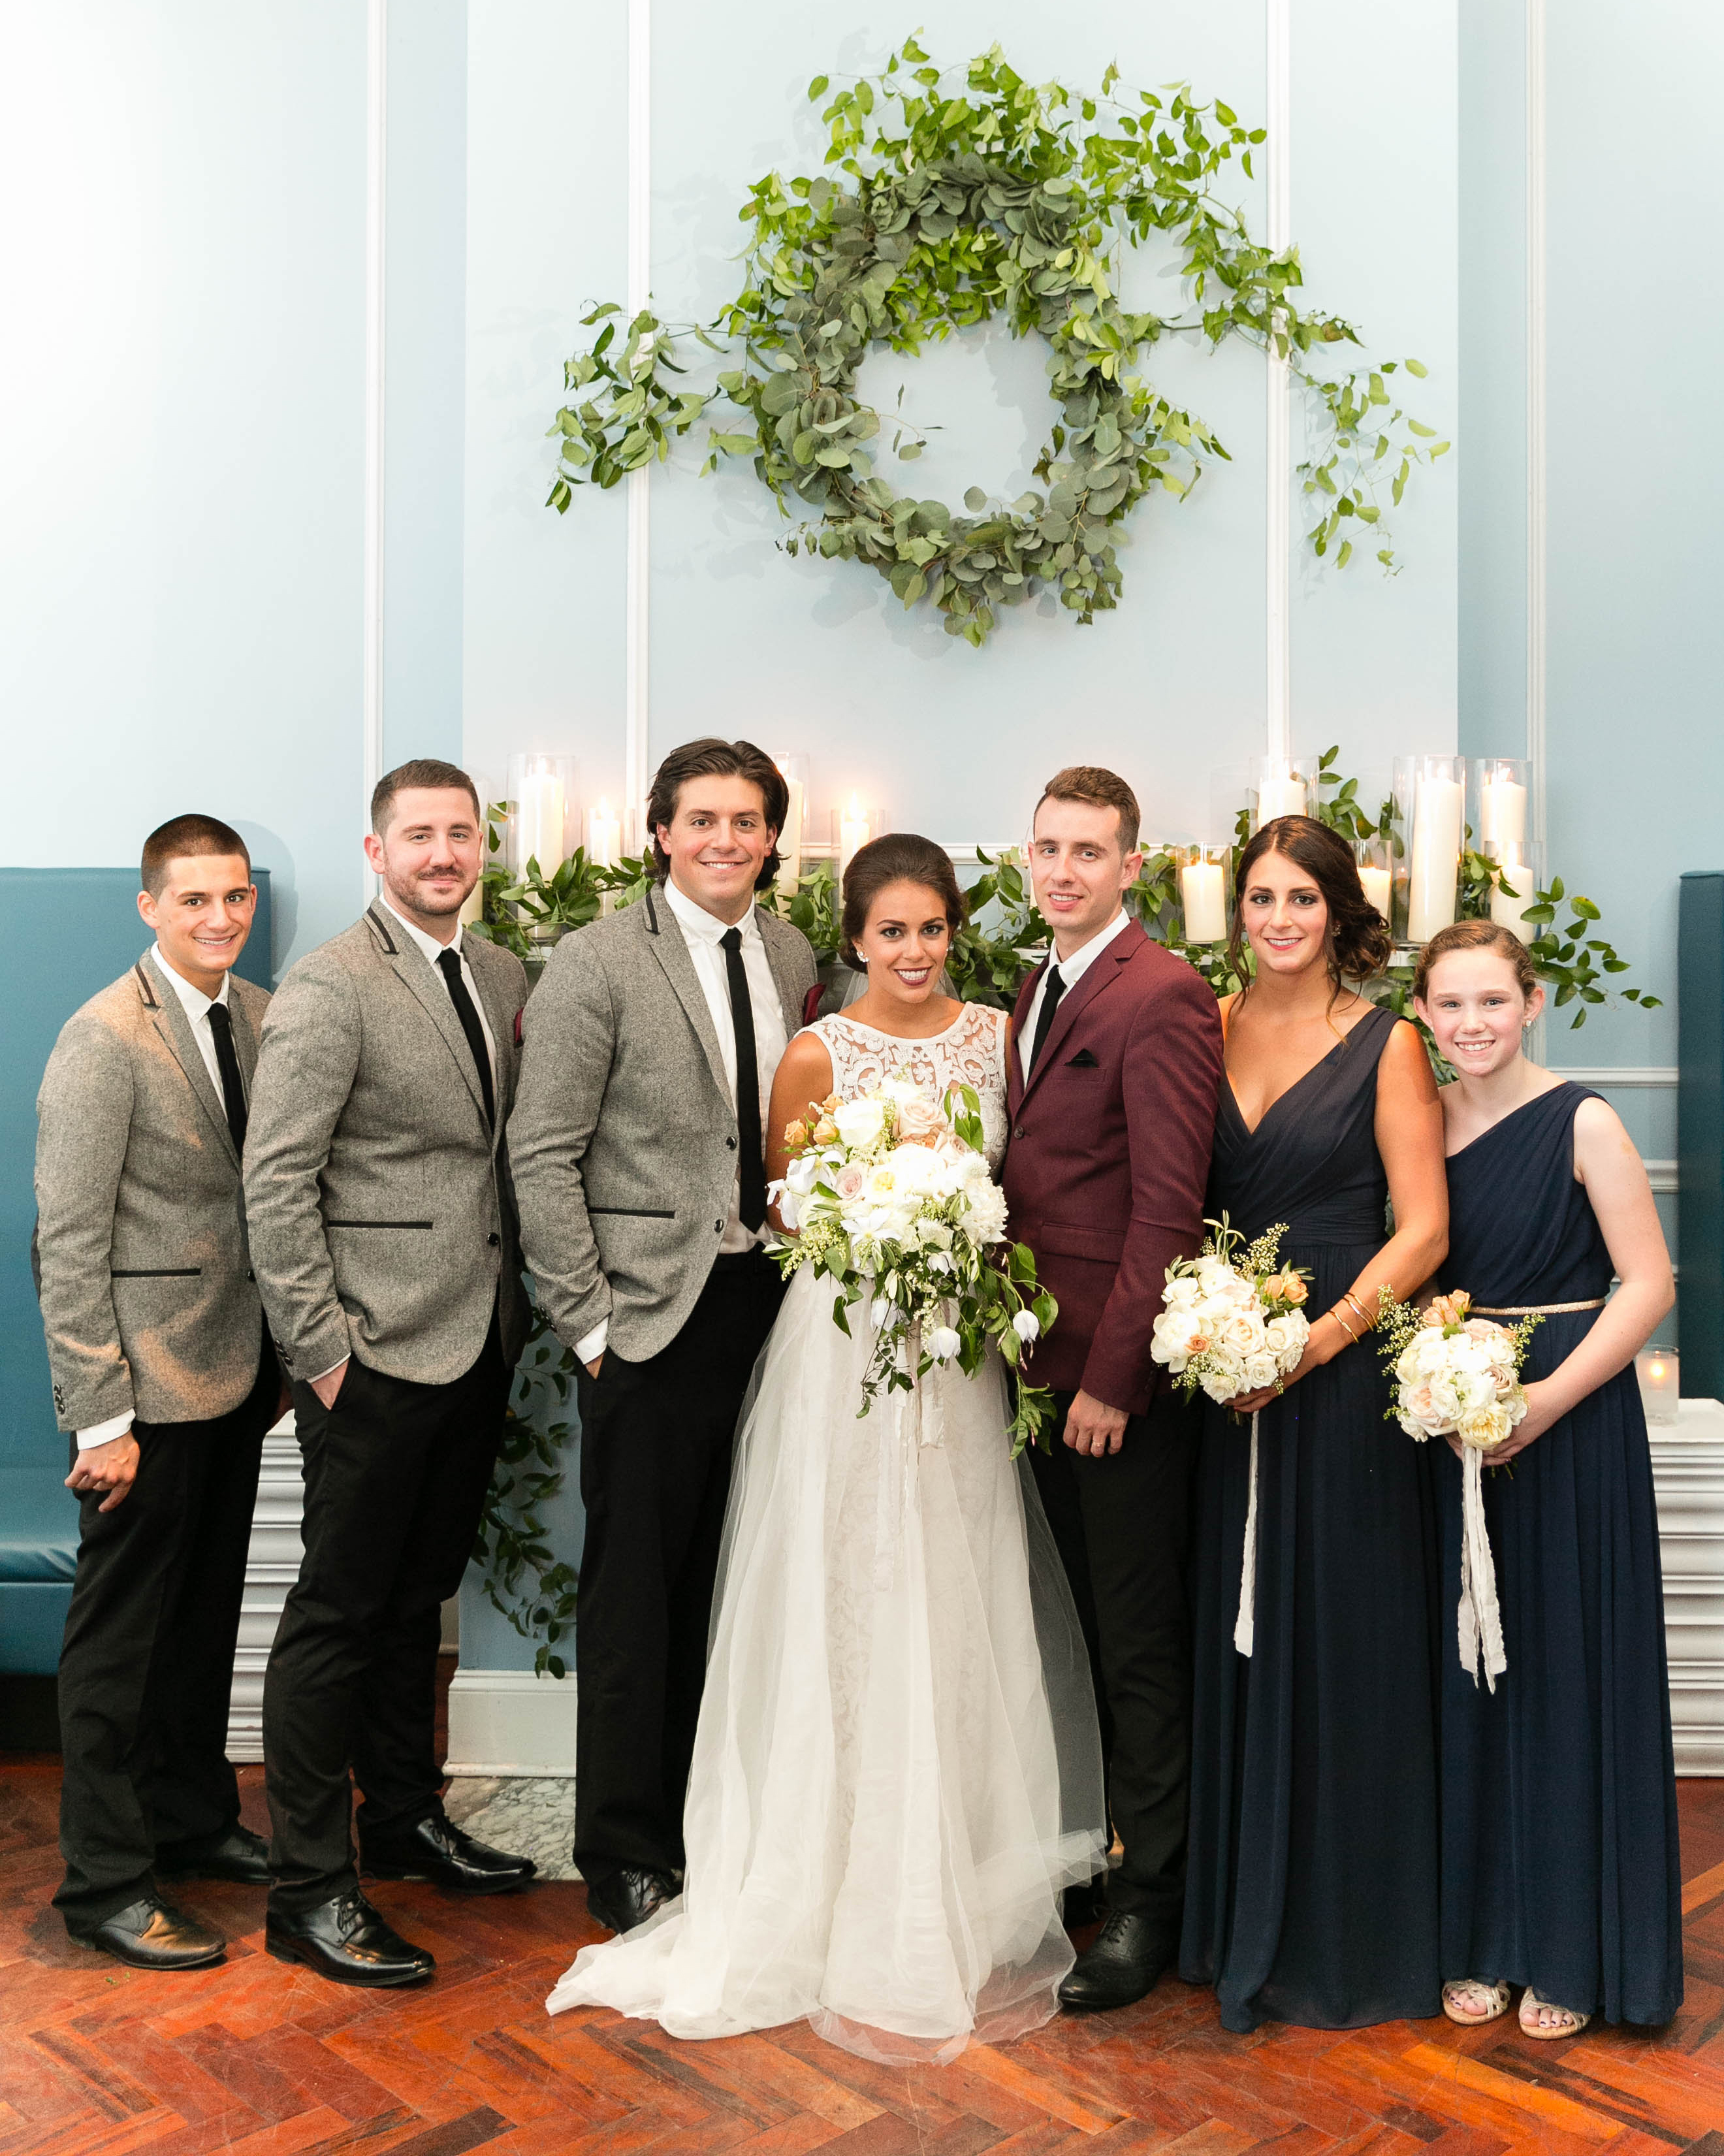 bianca-bryen-wedding-bridalparty-359-s112509-0216.jpg